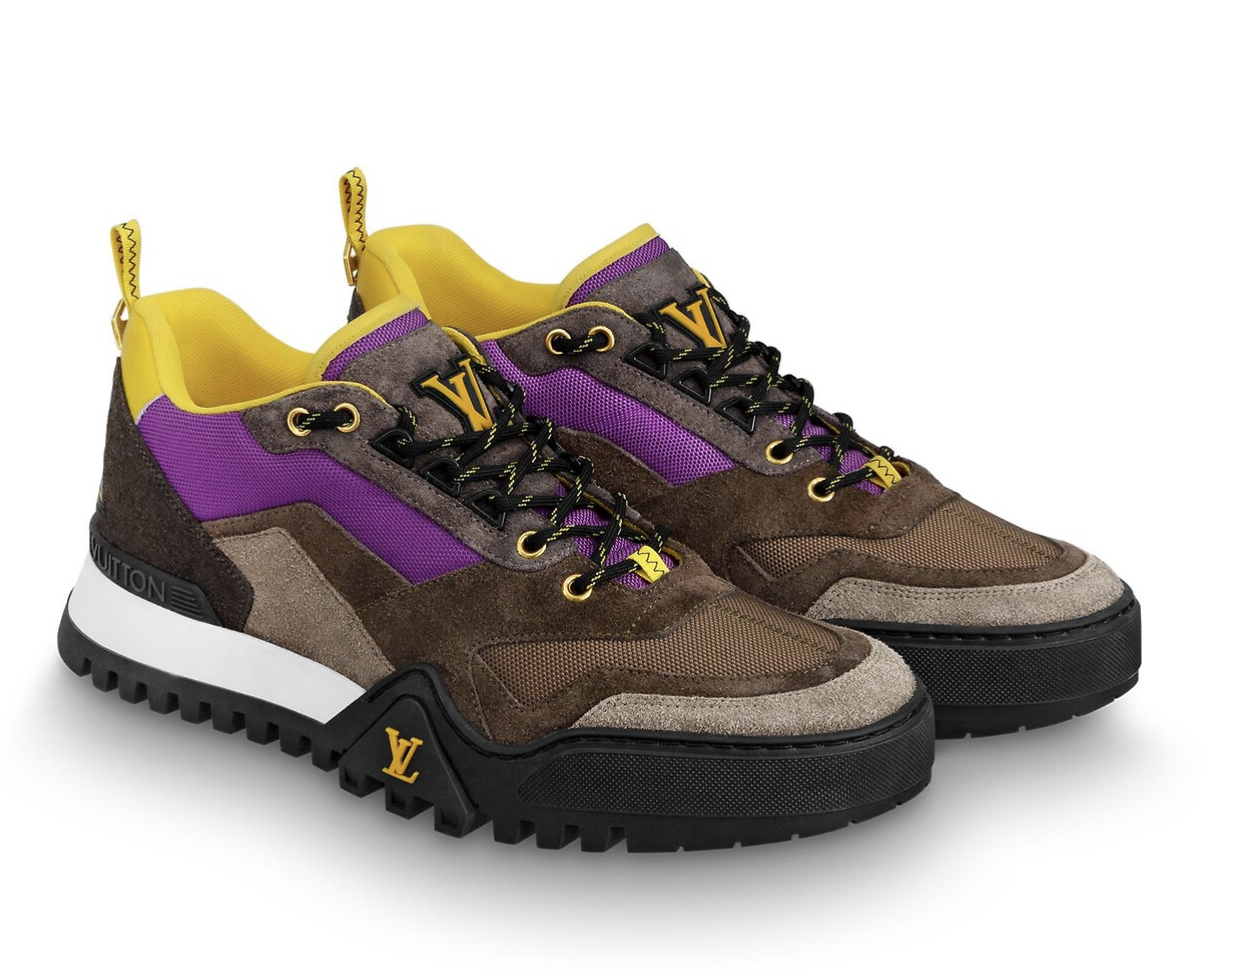 LV Hiking Sneaker in 2020 | Hiking sneakers, Sneakers, Louis